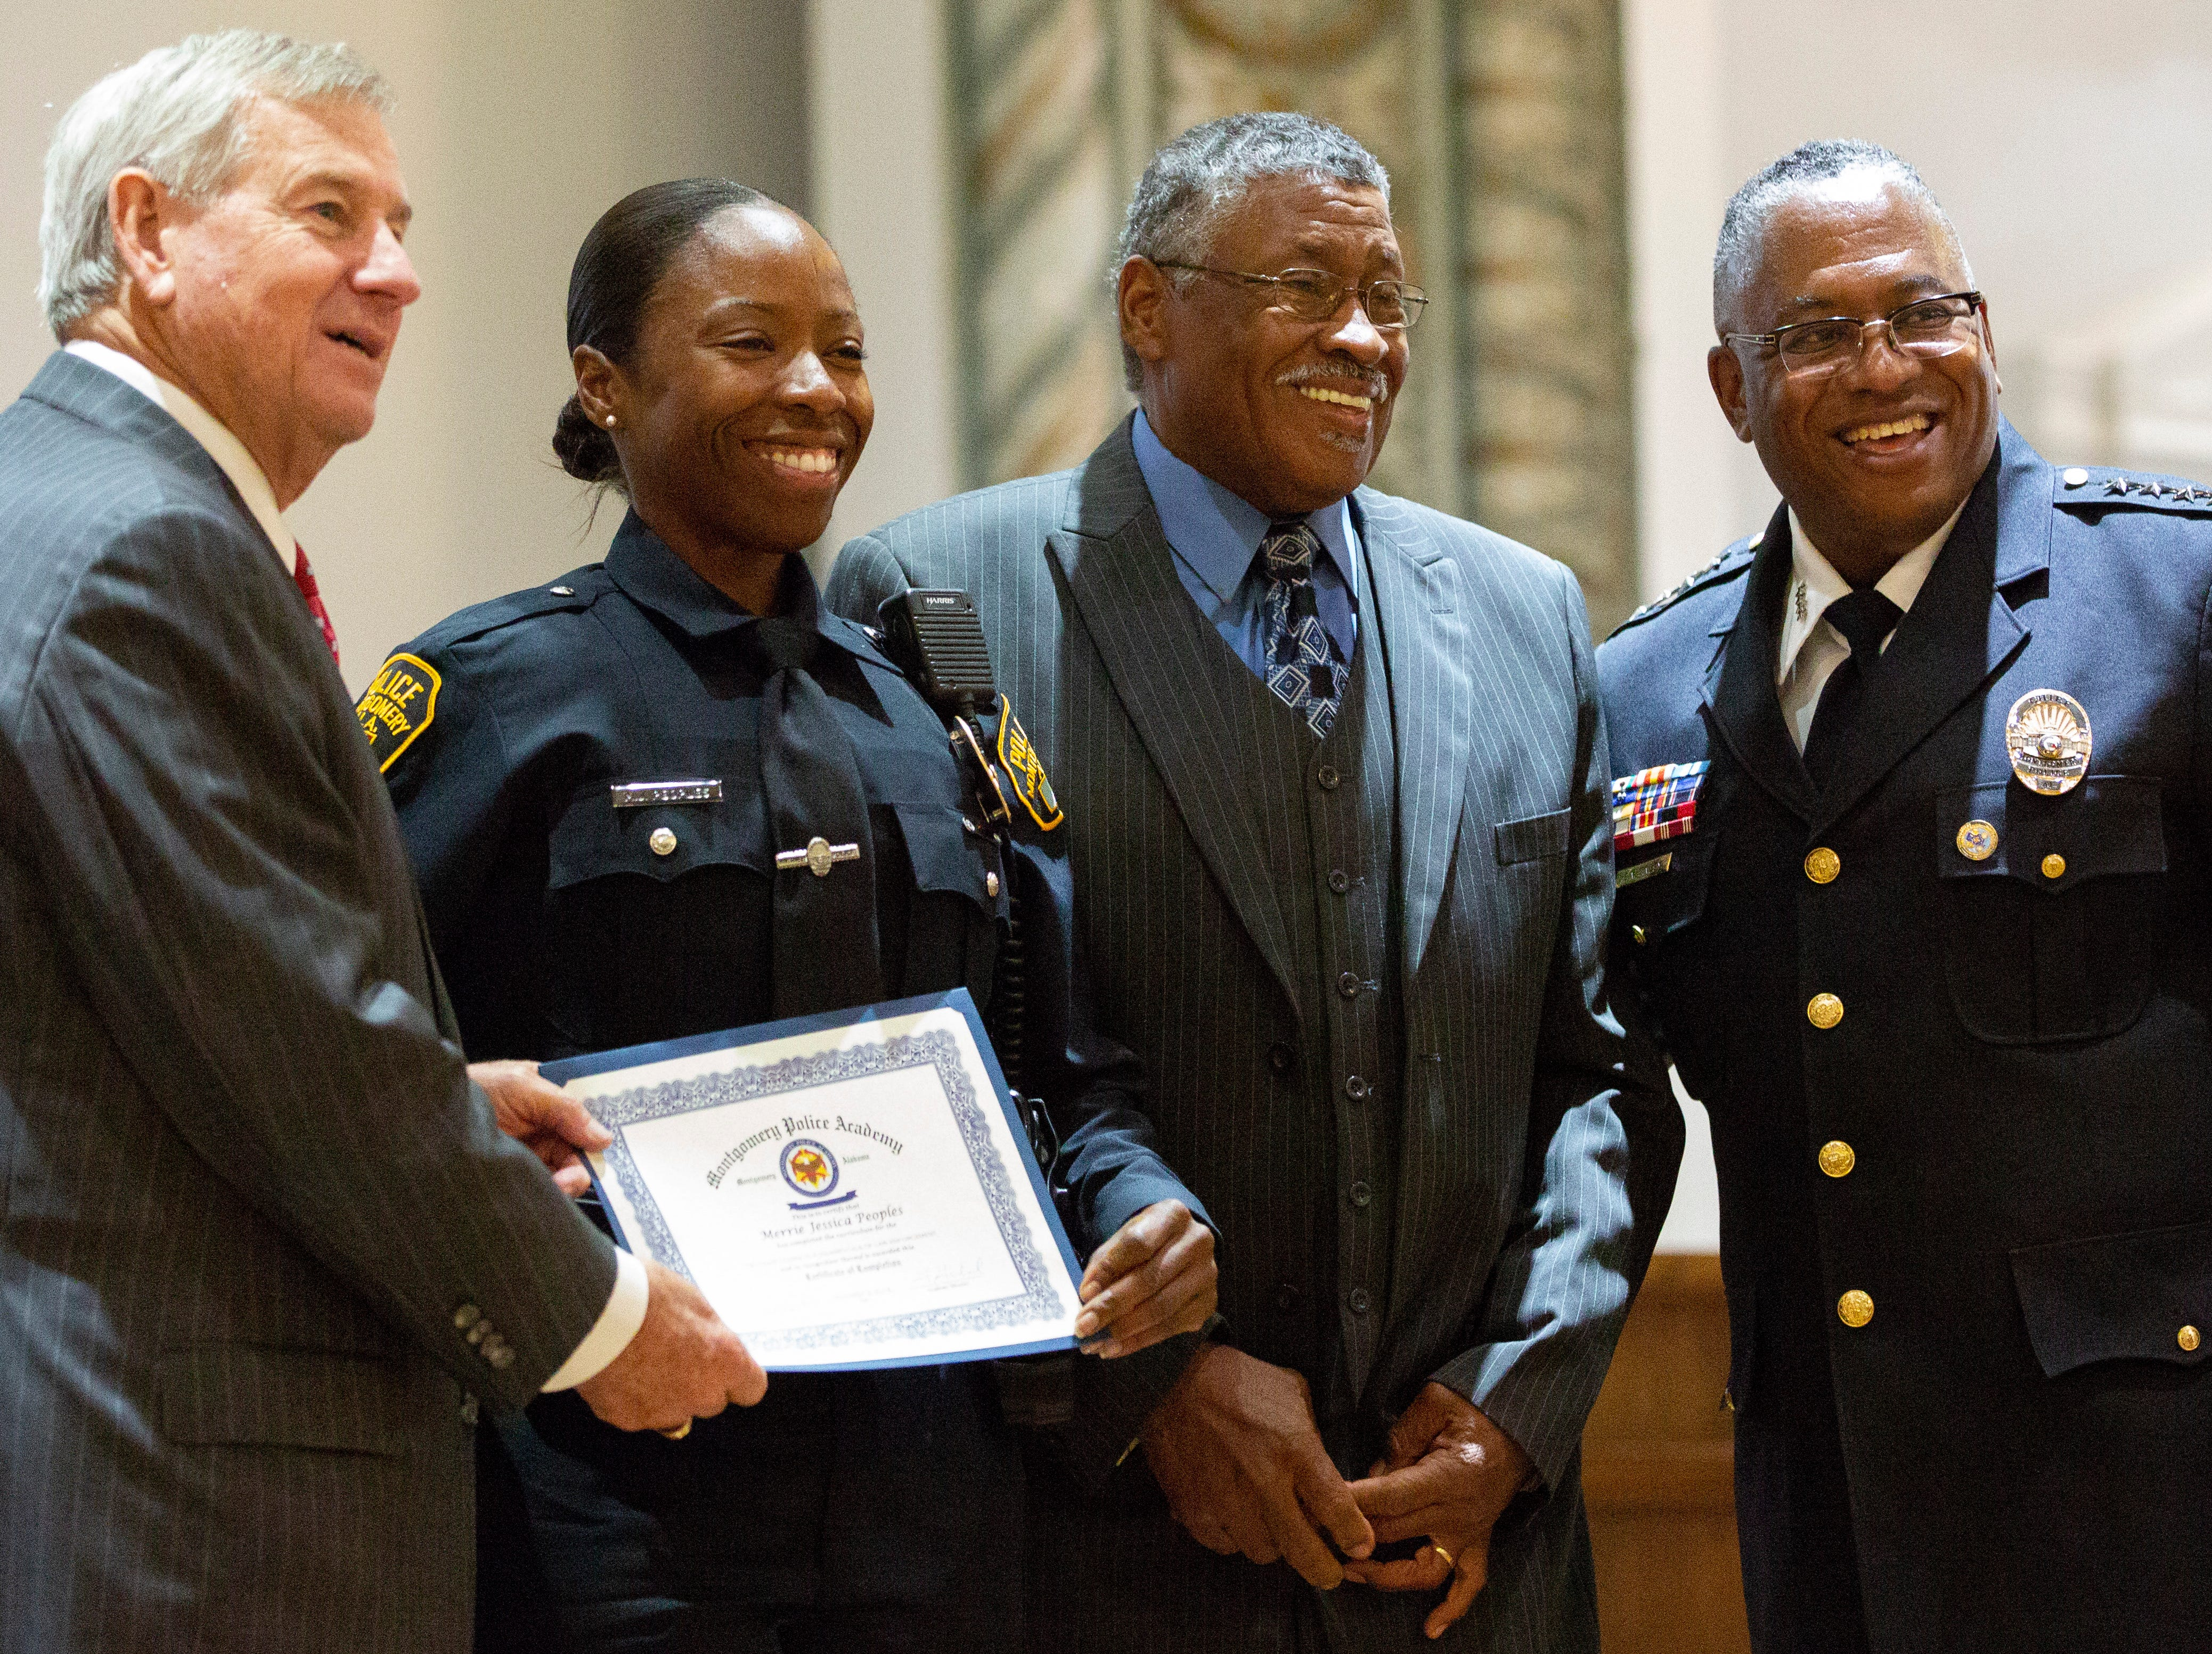 Montgomery police officer Merrie Peoples poses for a photo after graduating from the academy.